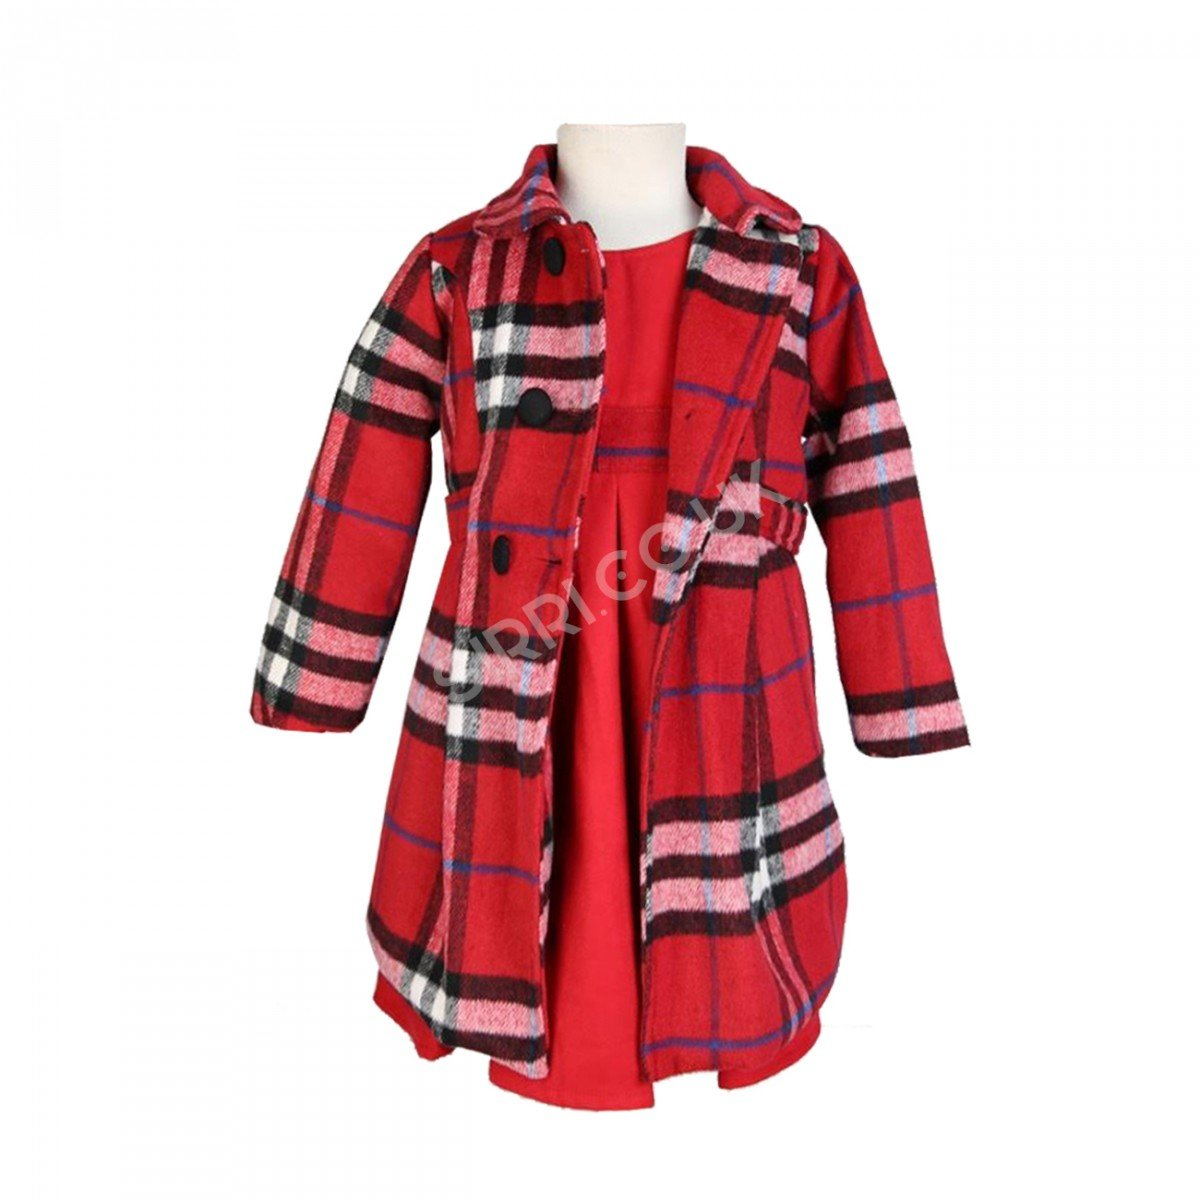 Girls Winter Coats with Dress - Grey, Navy, Red